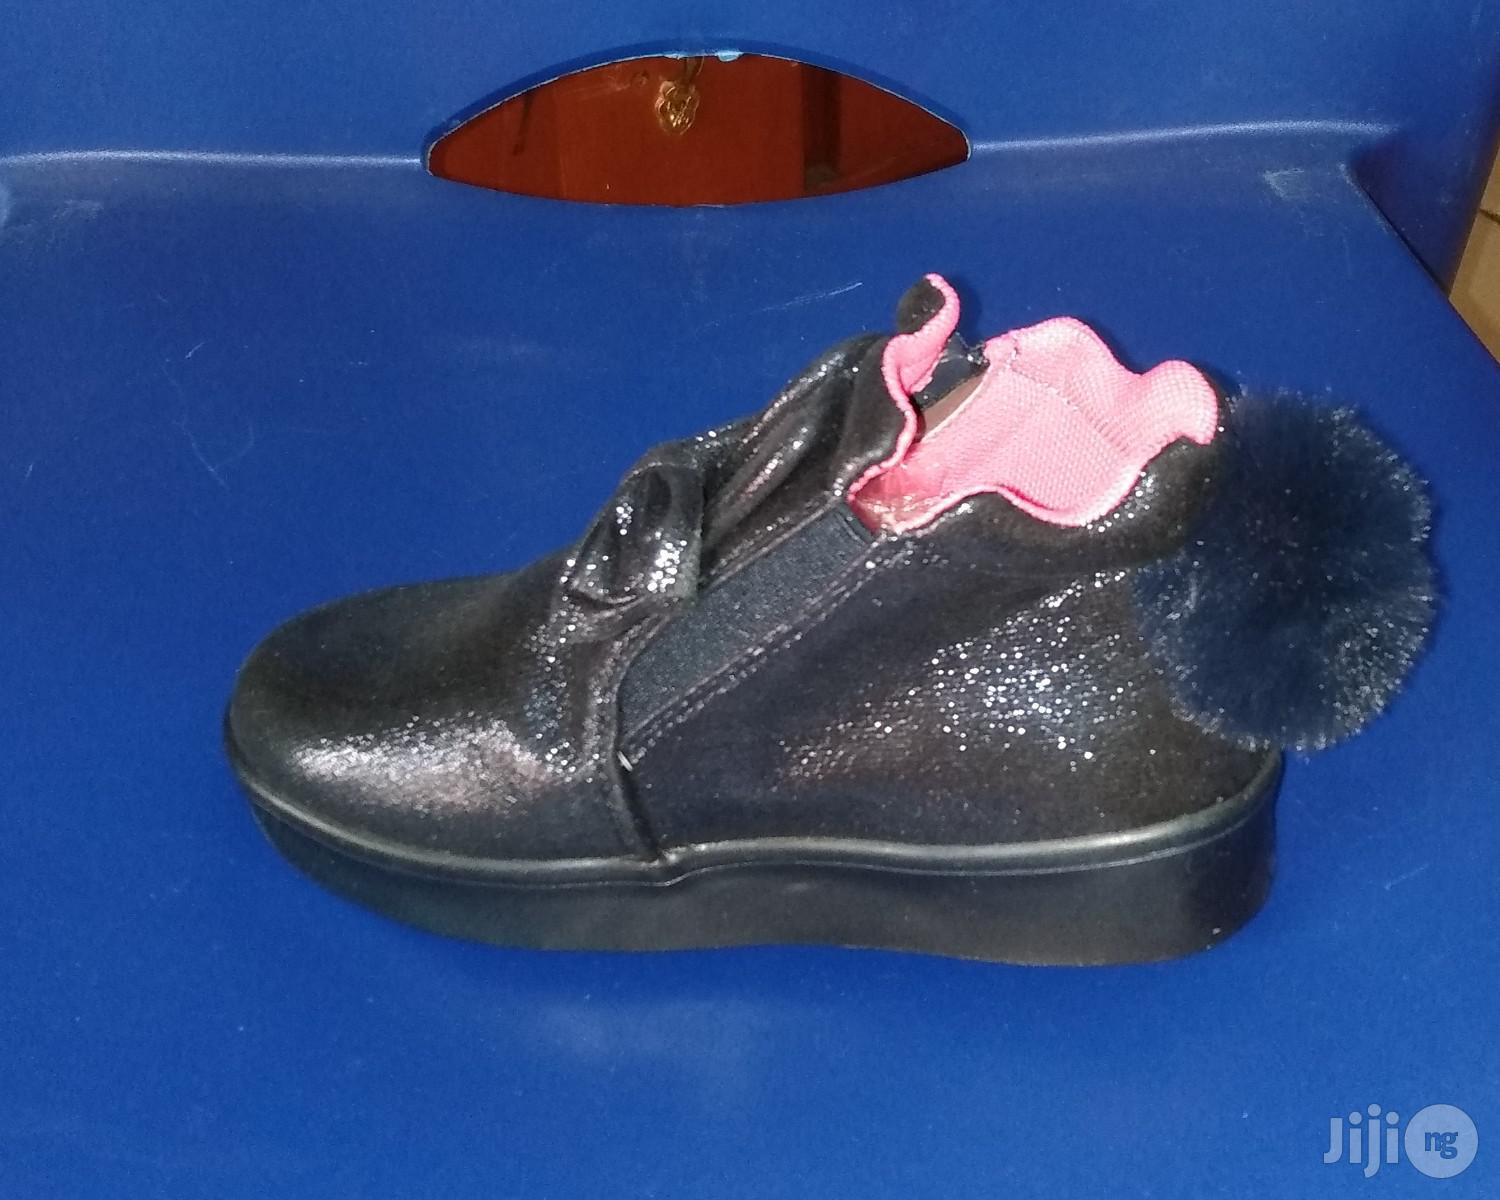 Navy Blue High Top Canvas With Light | Children's Shoes for sale in Lagos Island (Eko), Lagos State, Nigeria